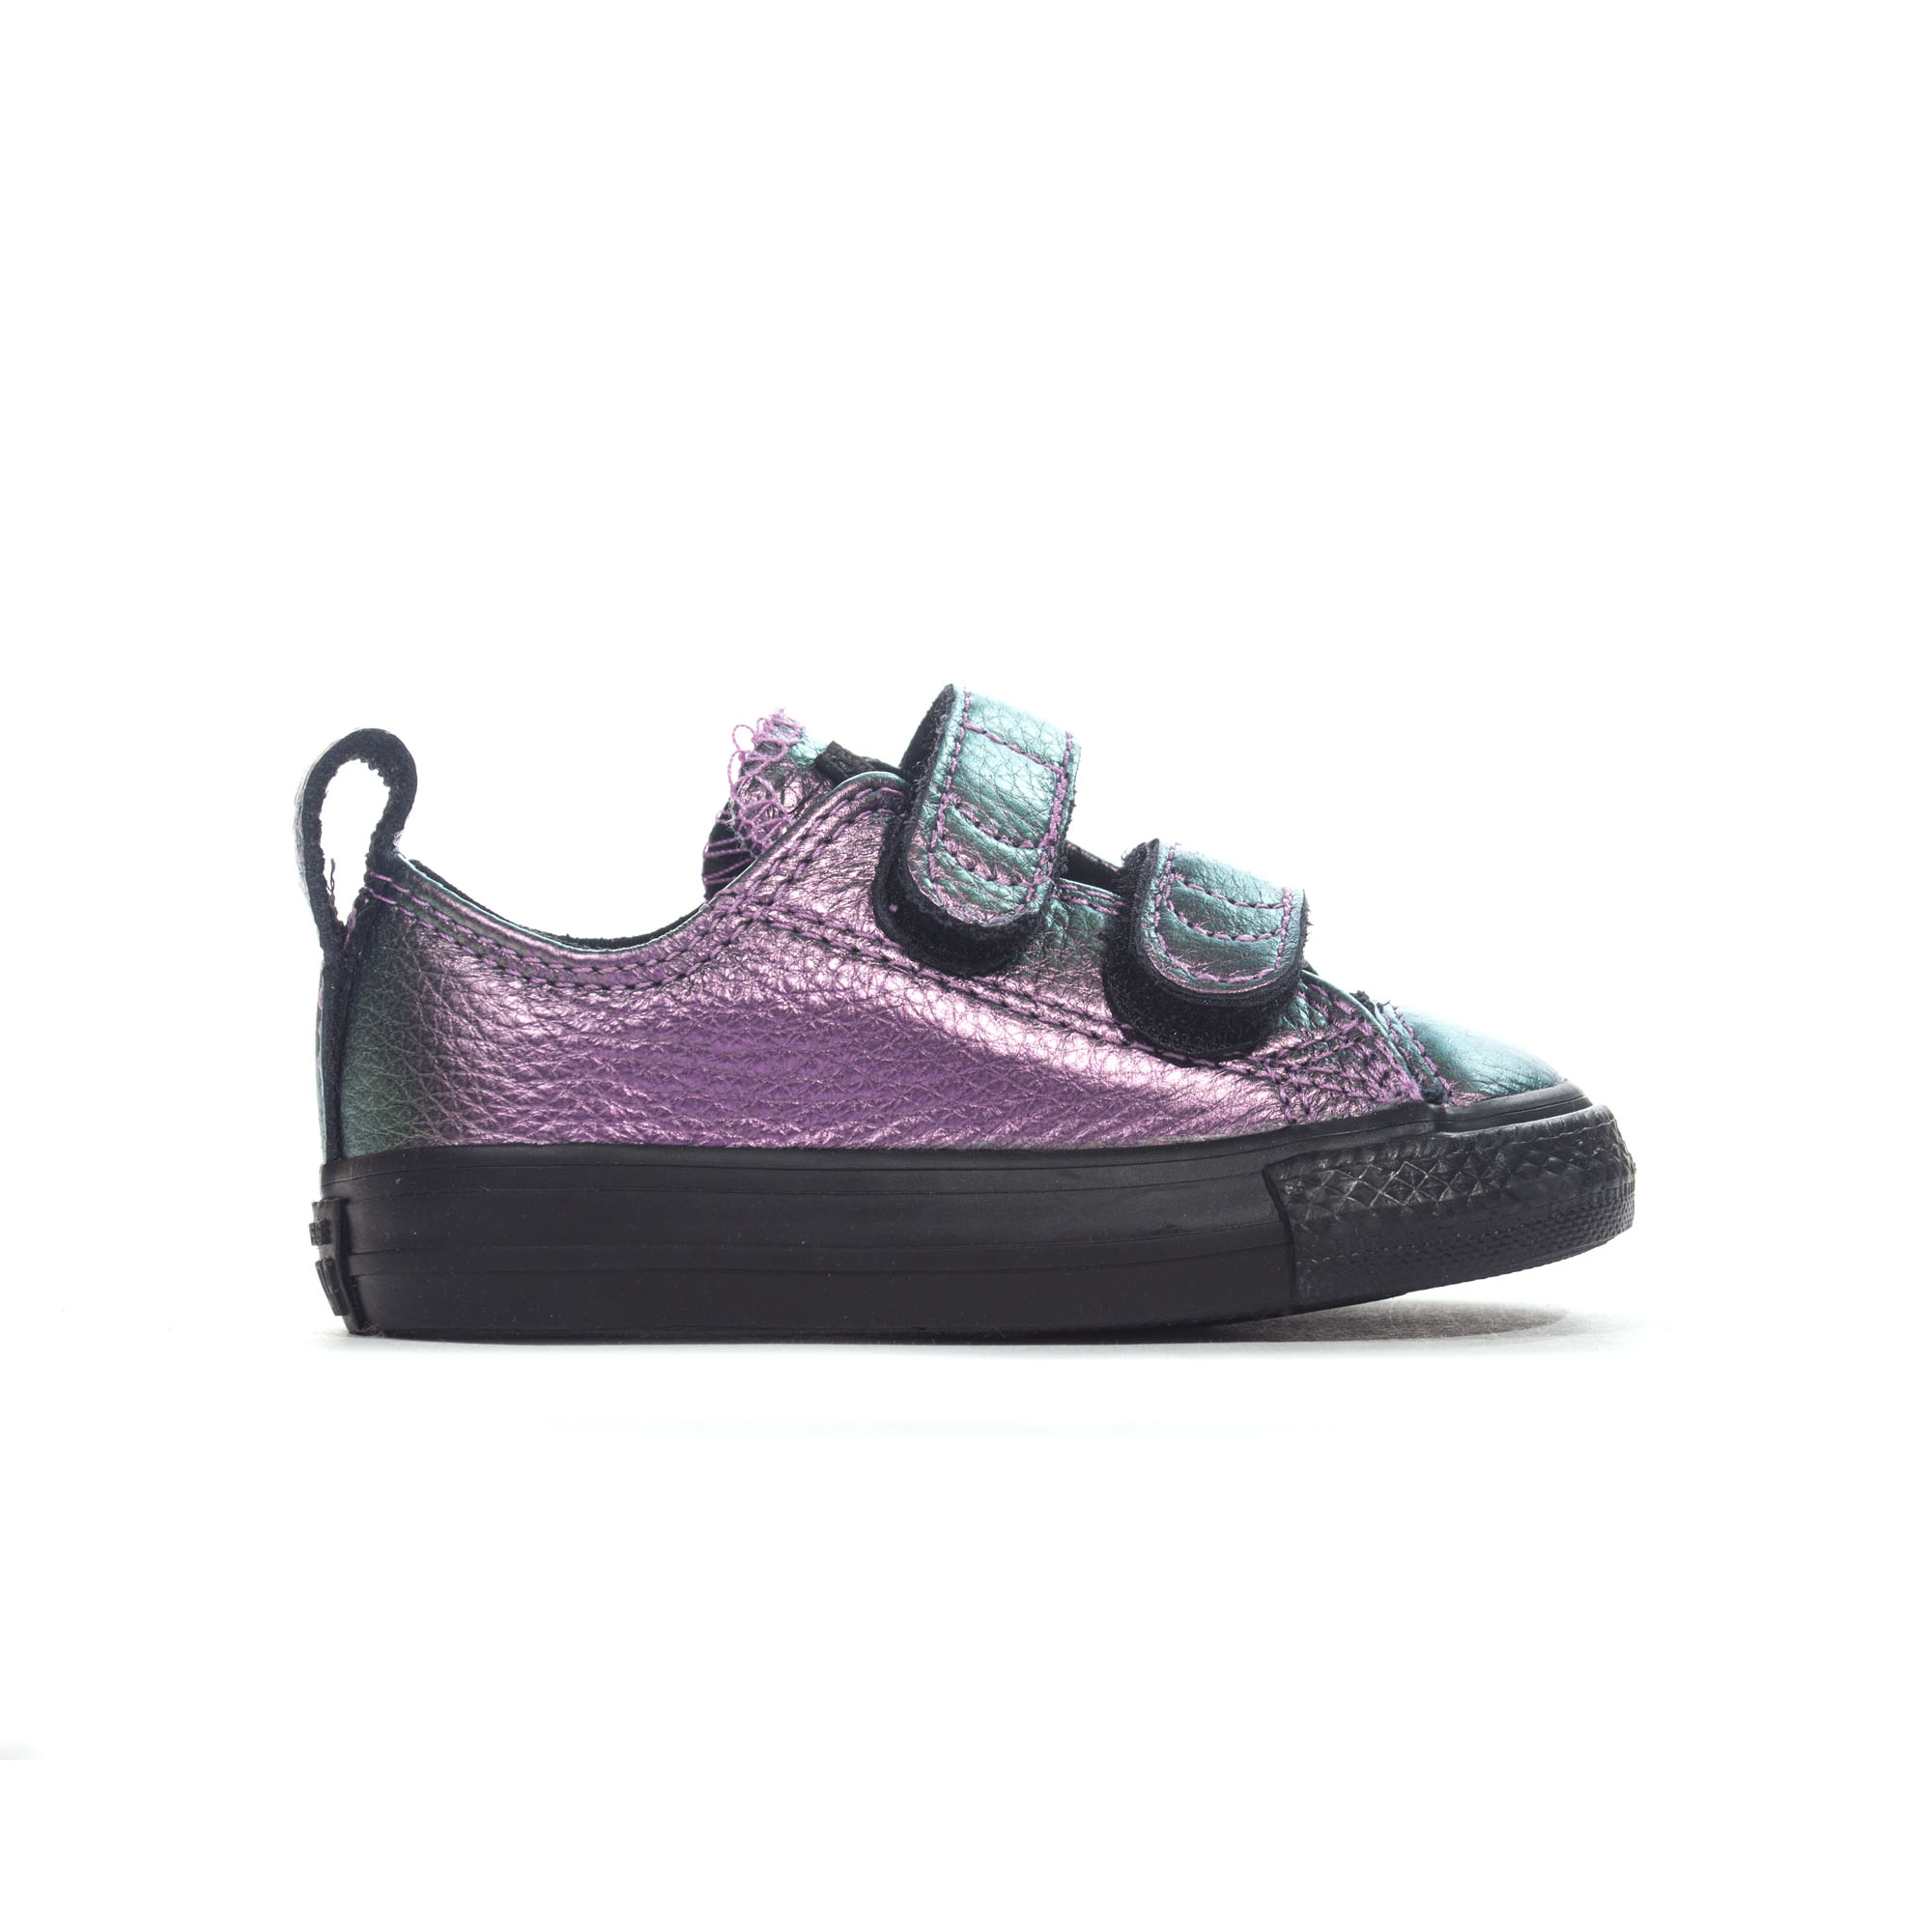 556c3afc2e22 Details about Converse All Star 2V Irridescent Ox Infant Girls Trainer  Purple - UK 4